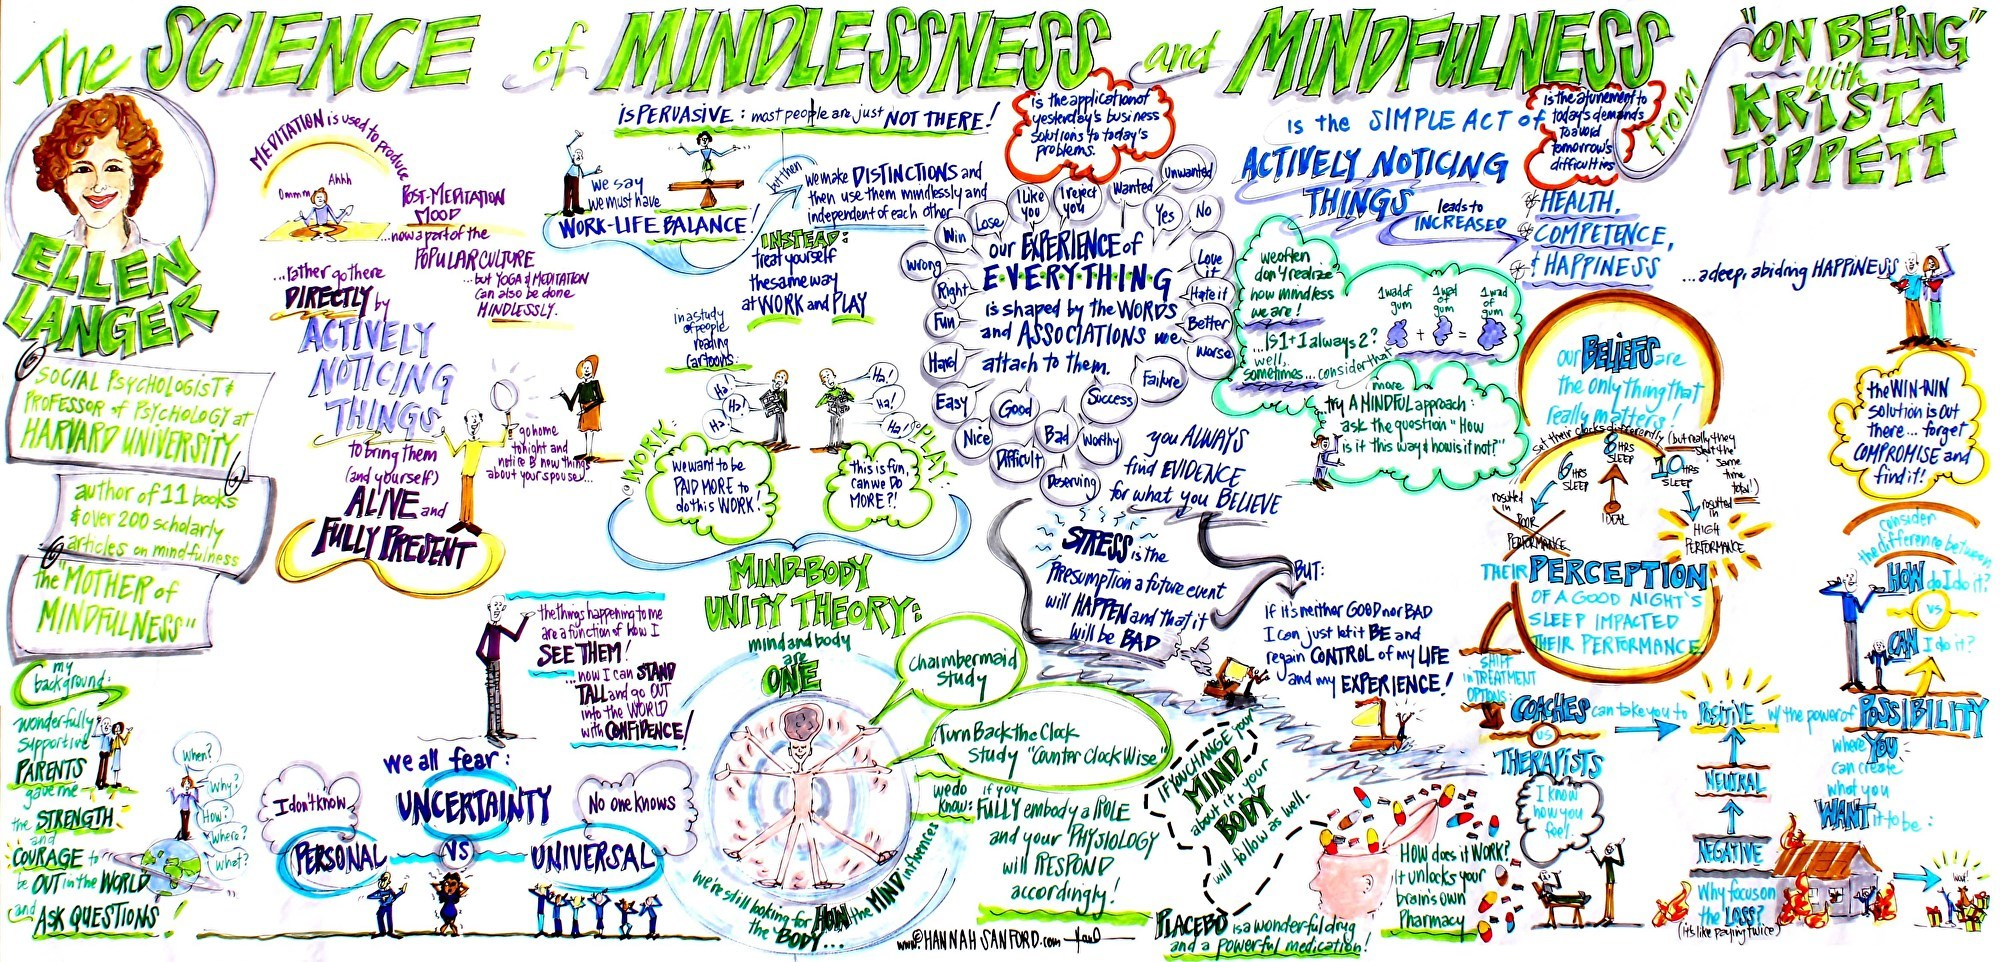 SCIENCE OF MINDLESSNESS & MINDFULNESS